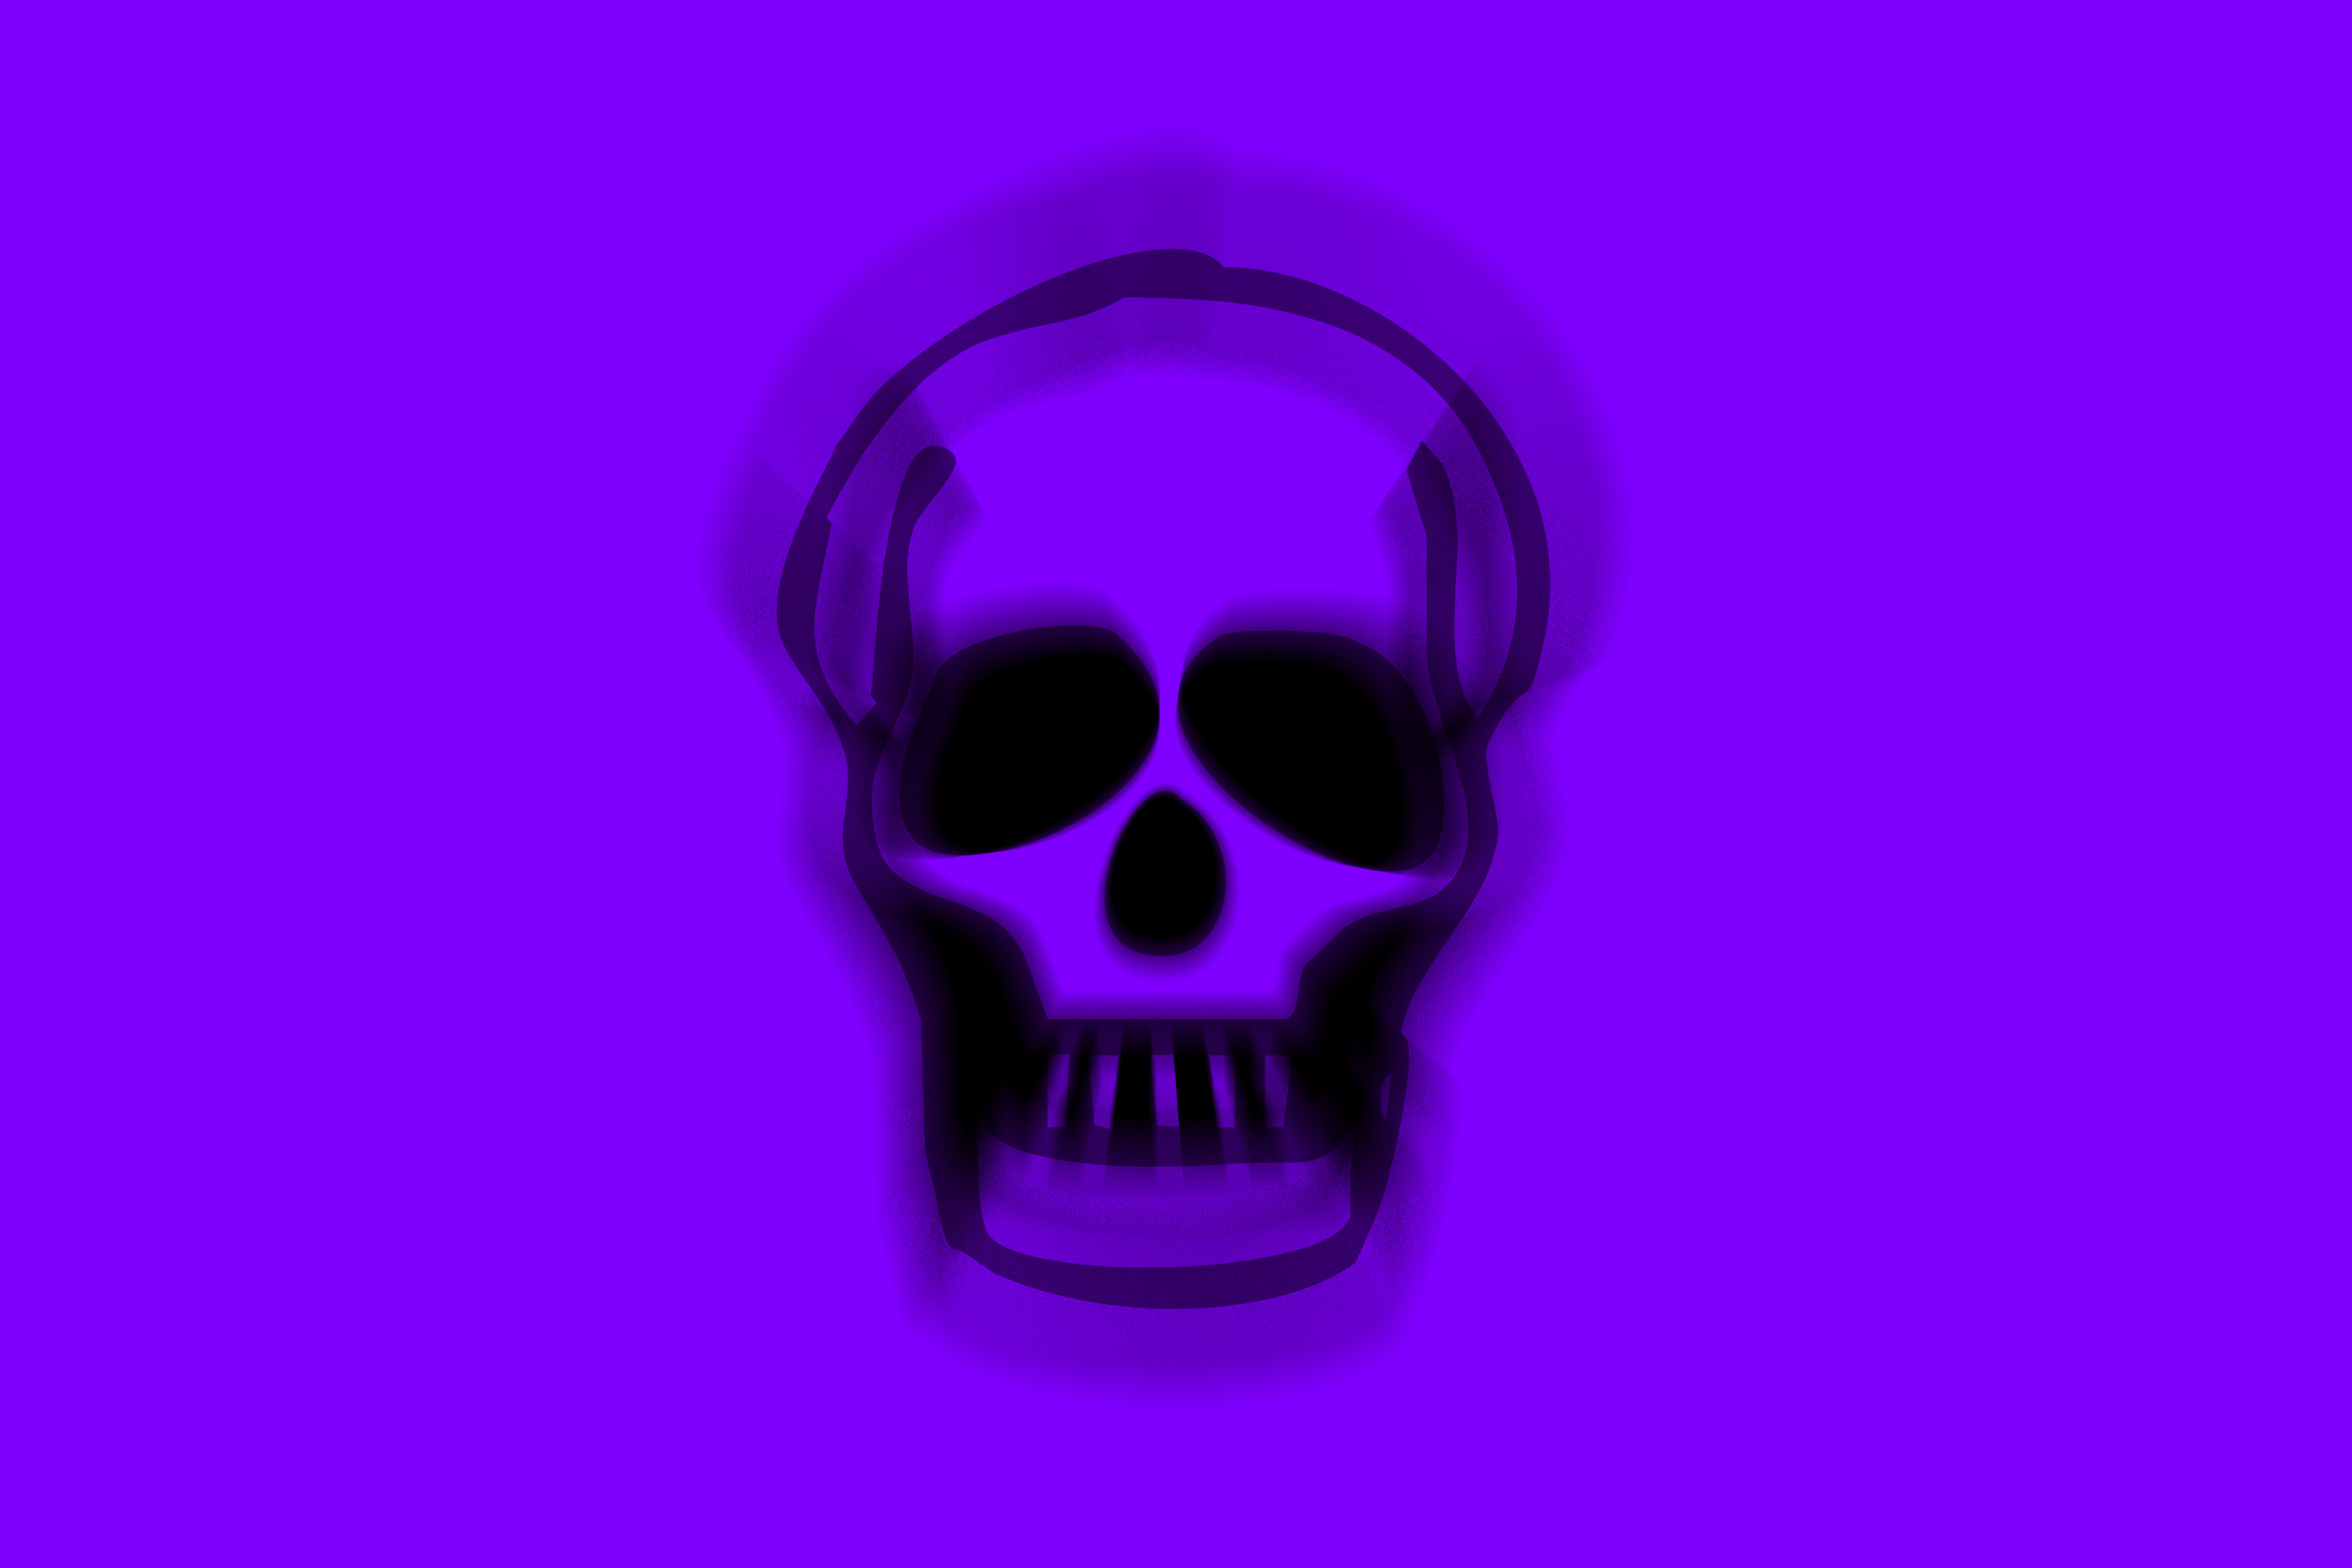 moving skull on a purple background